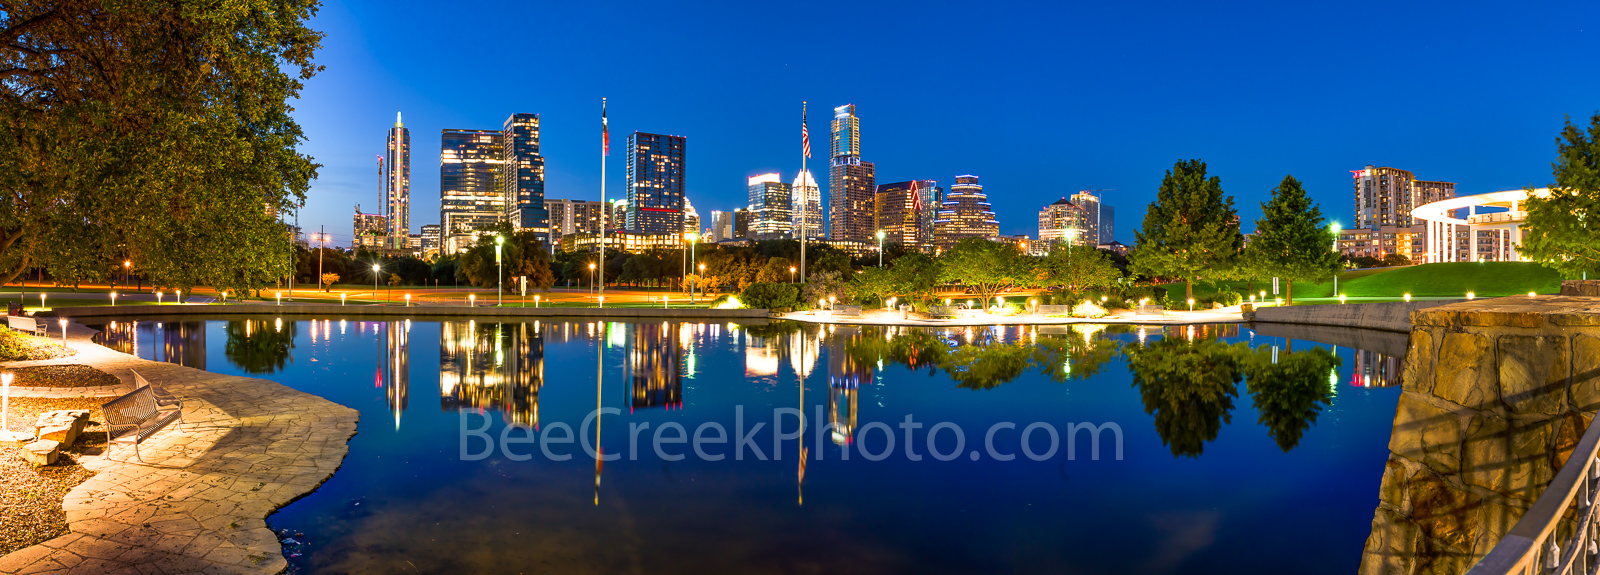 Austin, skyline, Austin Skyline, Austin Skyline Reflection Pano, Center, reflections, pool, Butler Park, Palmer Event Center, path, bench, city, cityscape, downtown, urban, high rise, buildings, skysc, photo